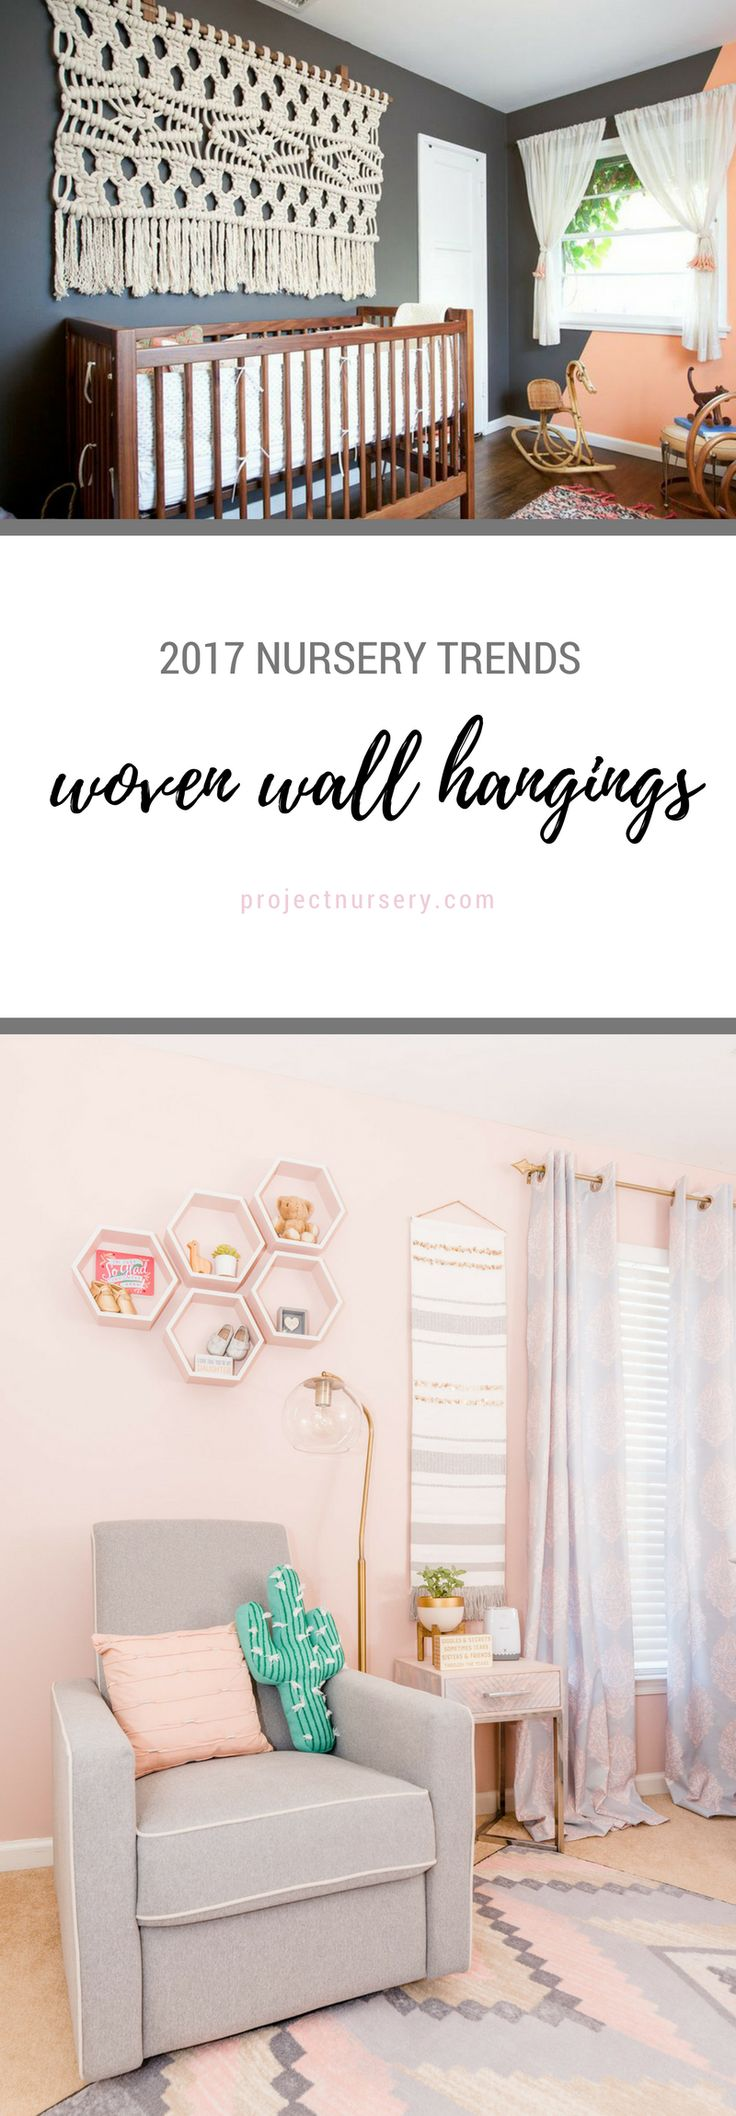 2017 Nursery Trend: Woven Wall Hangings. Boho vibes are still trending strong, but this year our Boho trends have added a punch of glam. What really stands out are the textured wall hangings—woven, macrame, braided, feathers—it doesn't matter. We love them all, and we see this trend continuing in 2017.